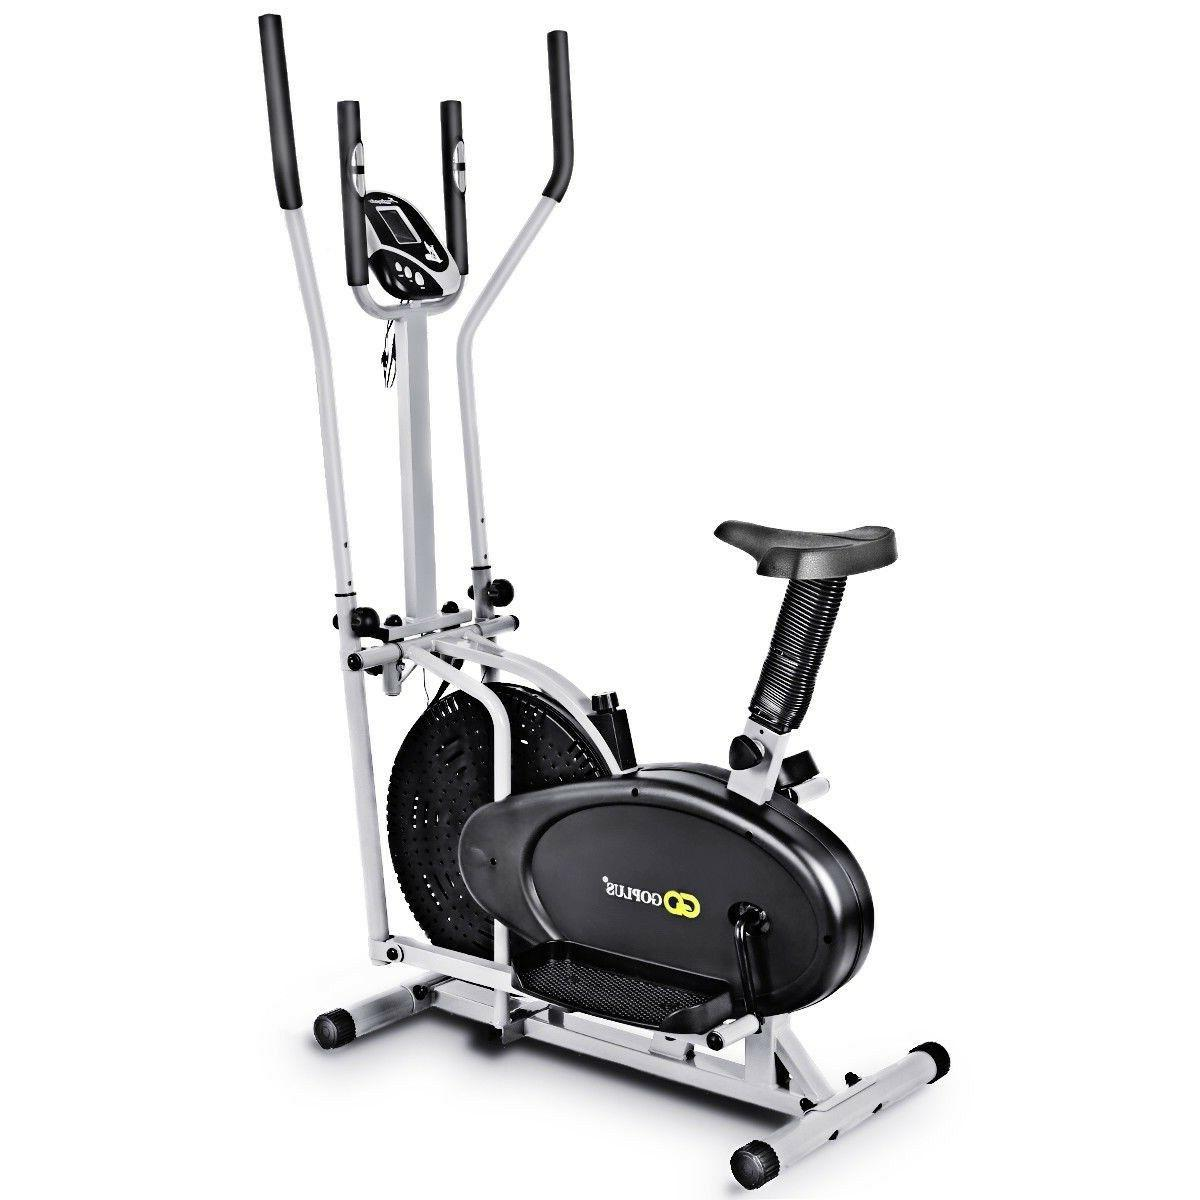 two in one elliptical dual cross trainer